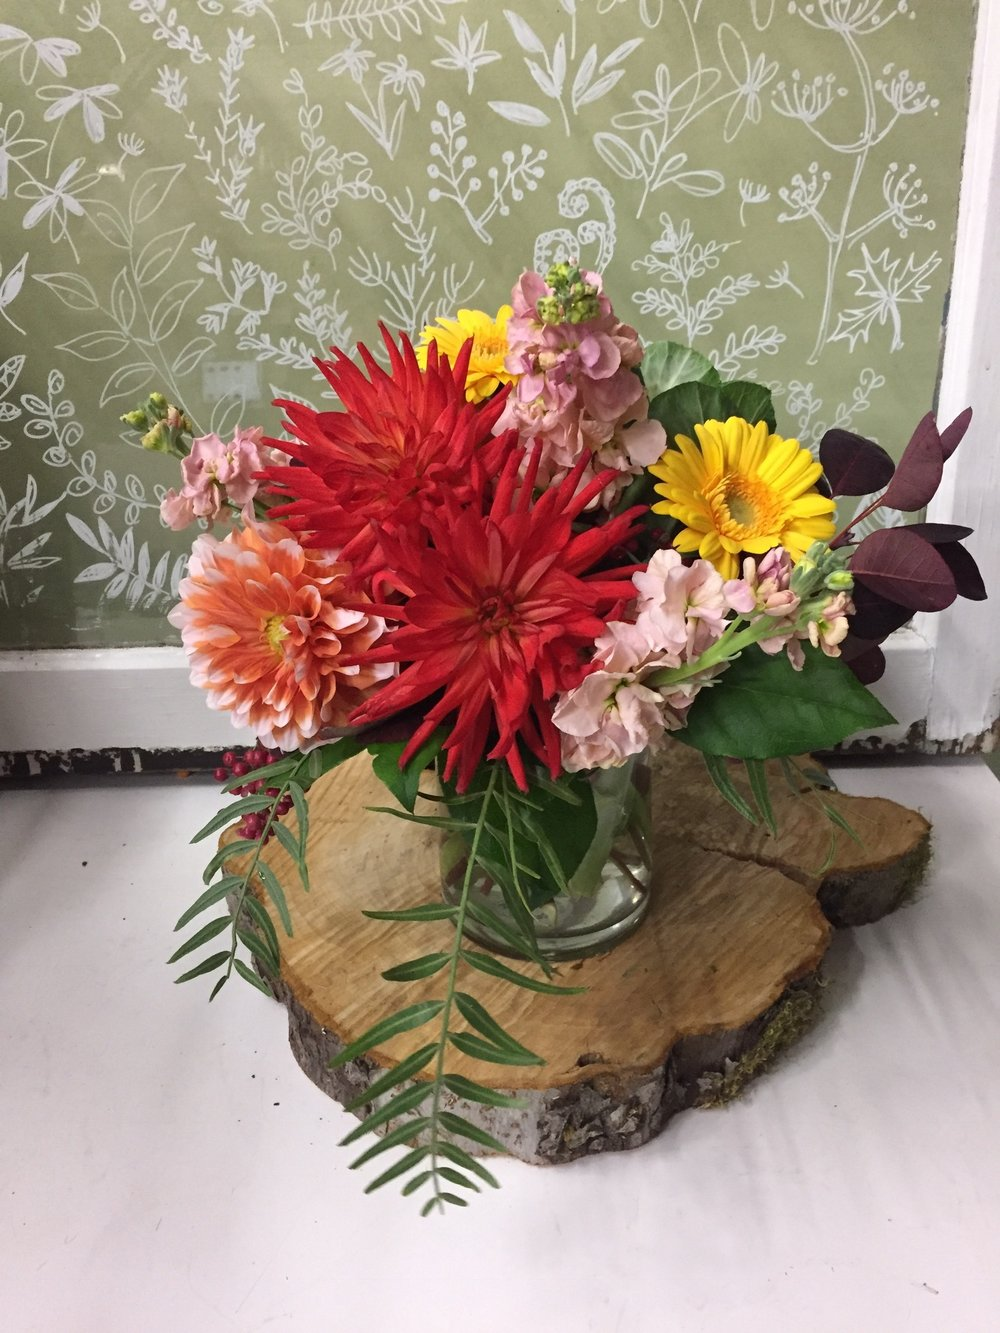 1. Summer brights with dahlias